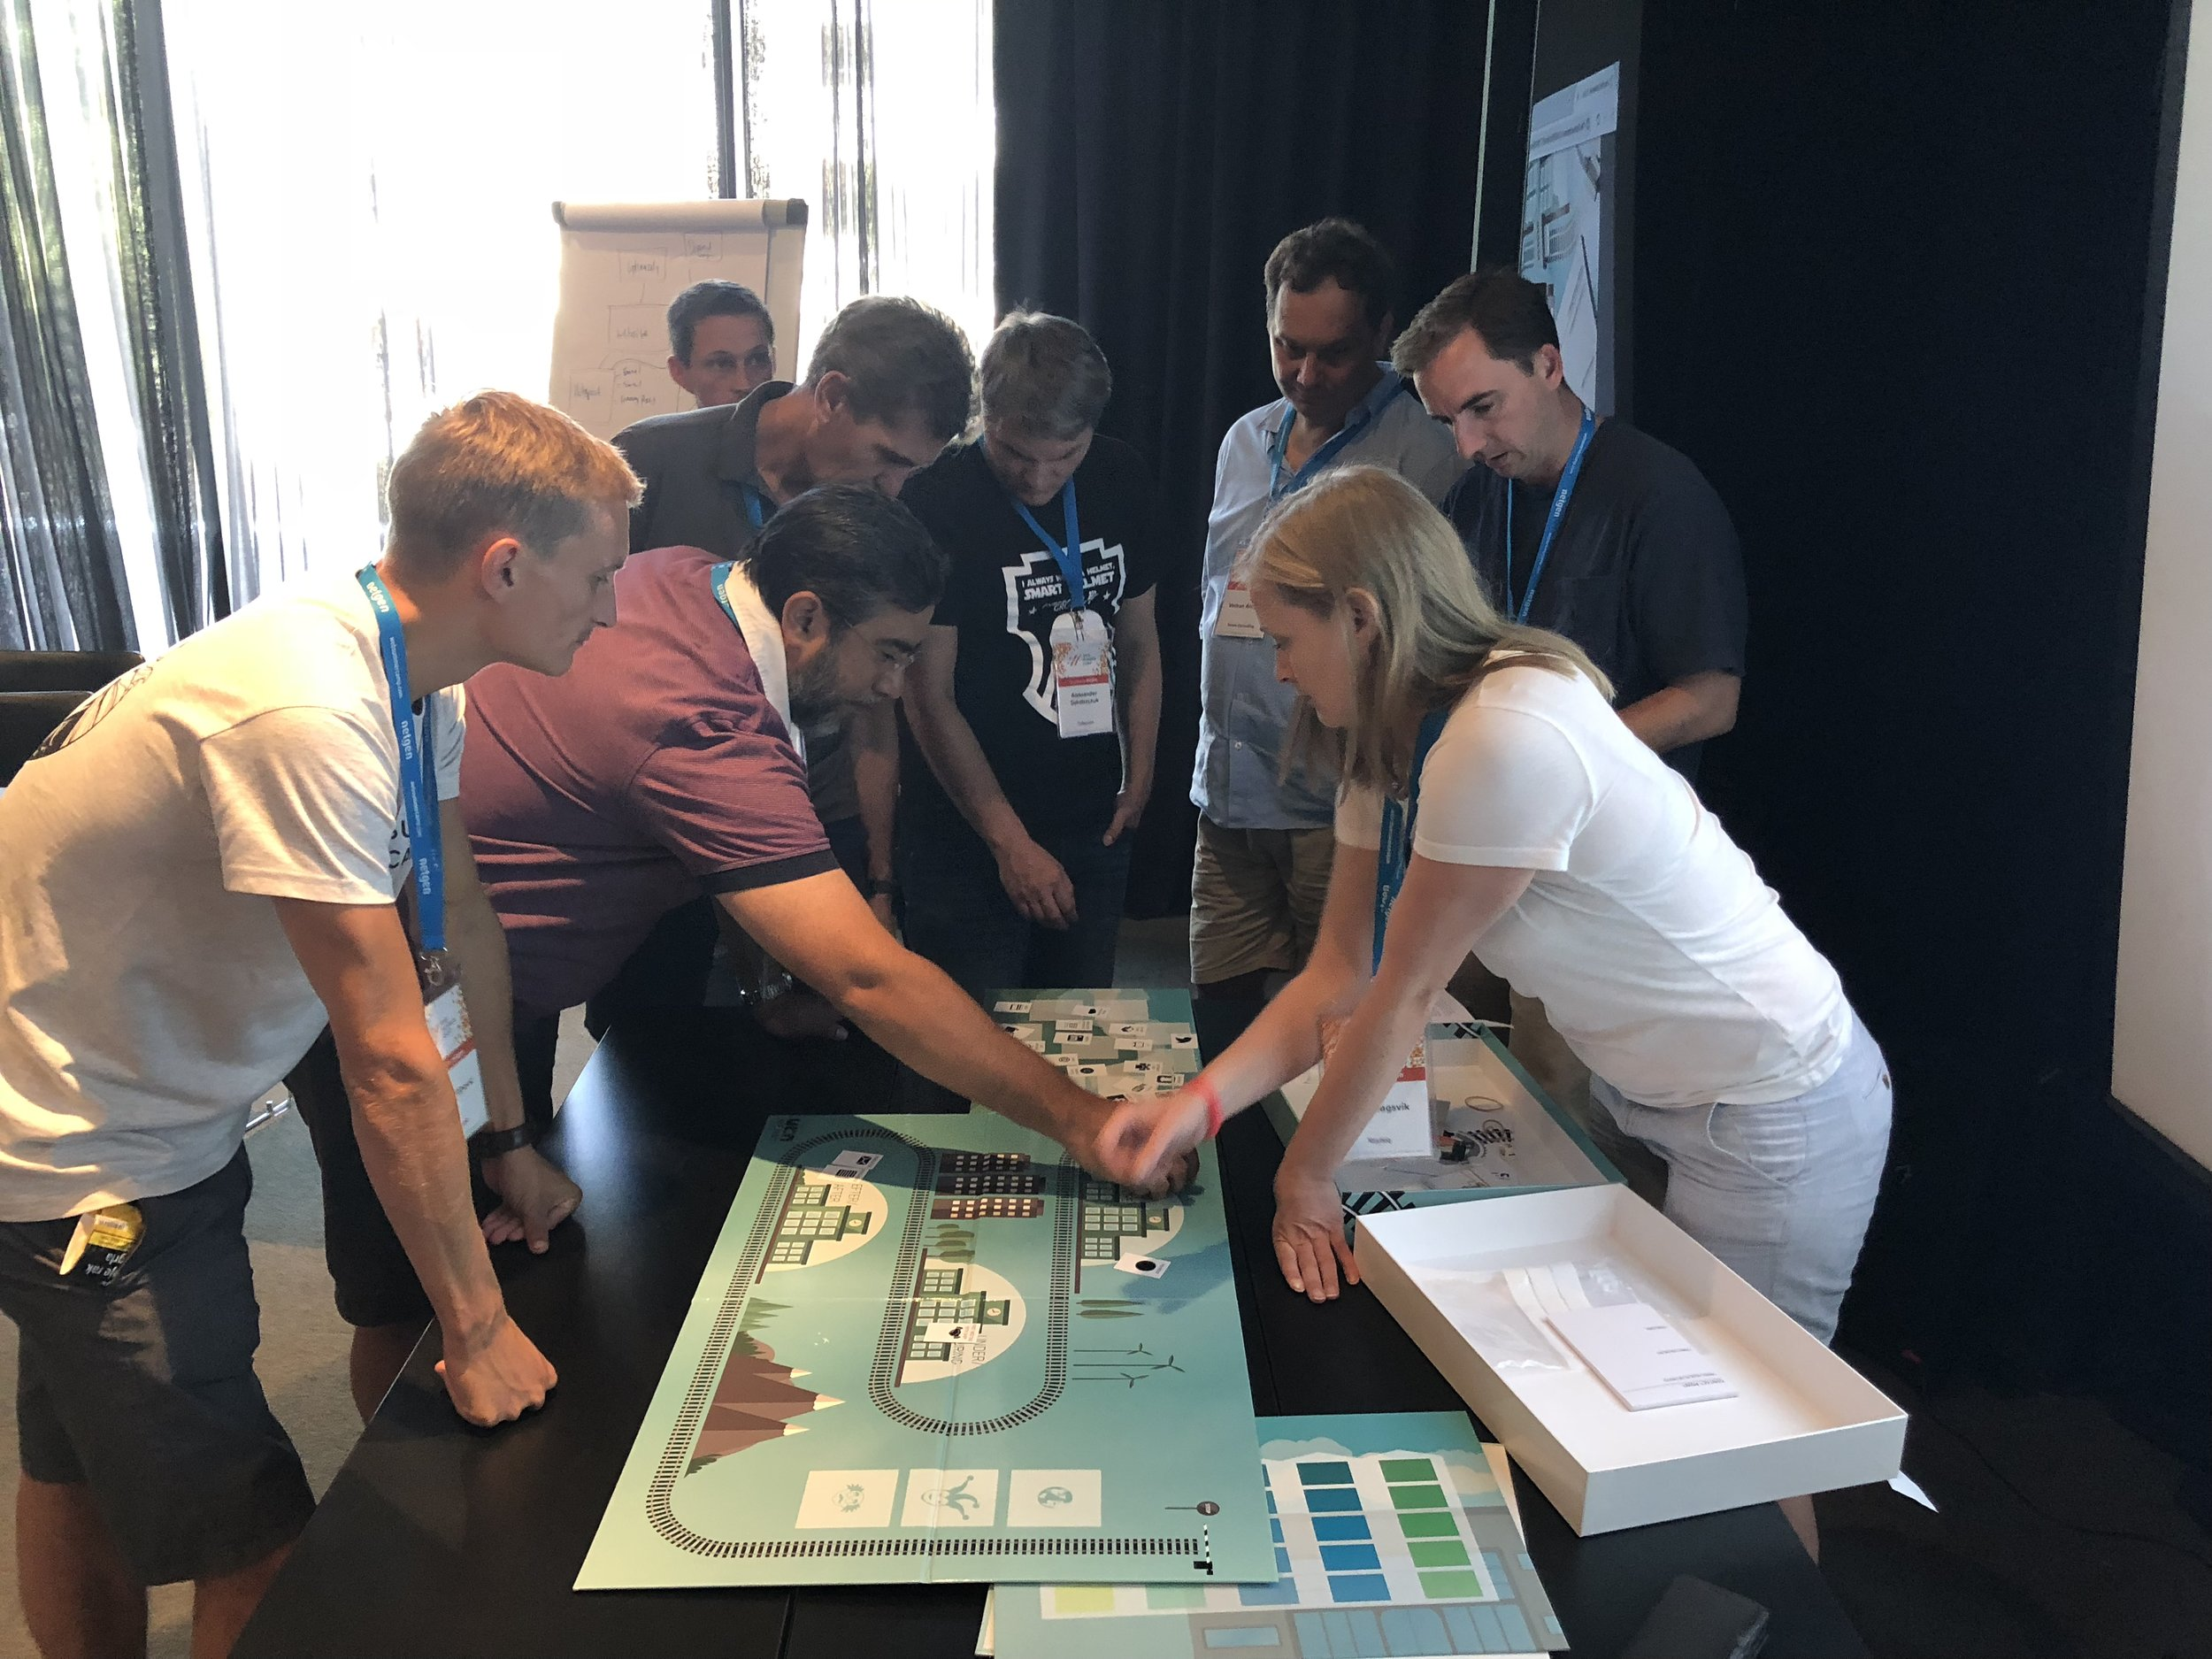 Playing the service design board game at Web Summer Camp 2018